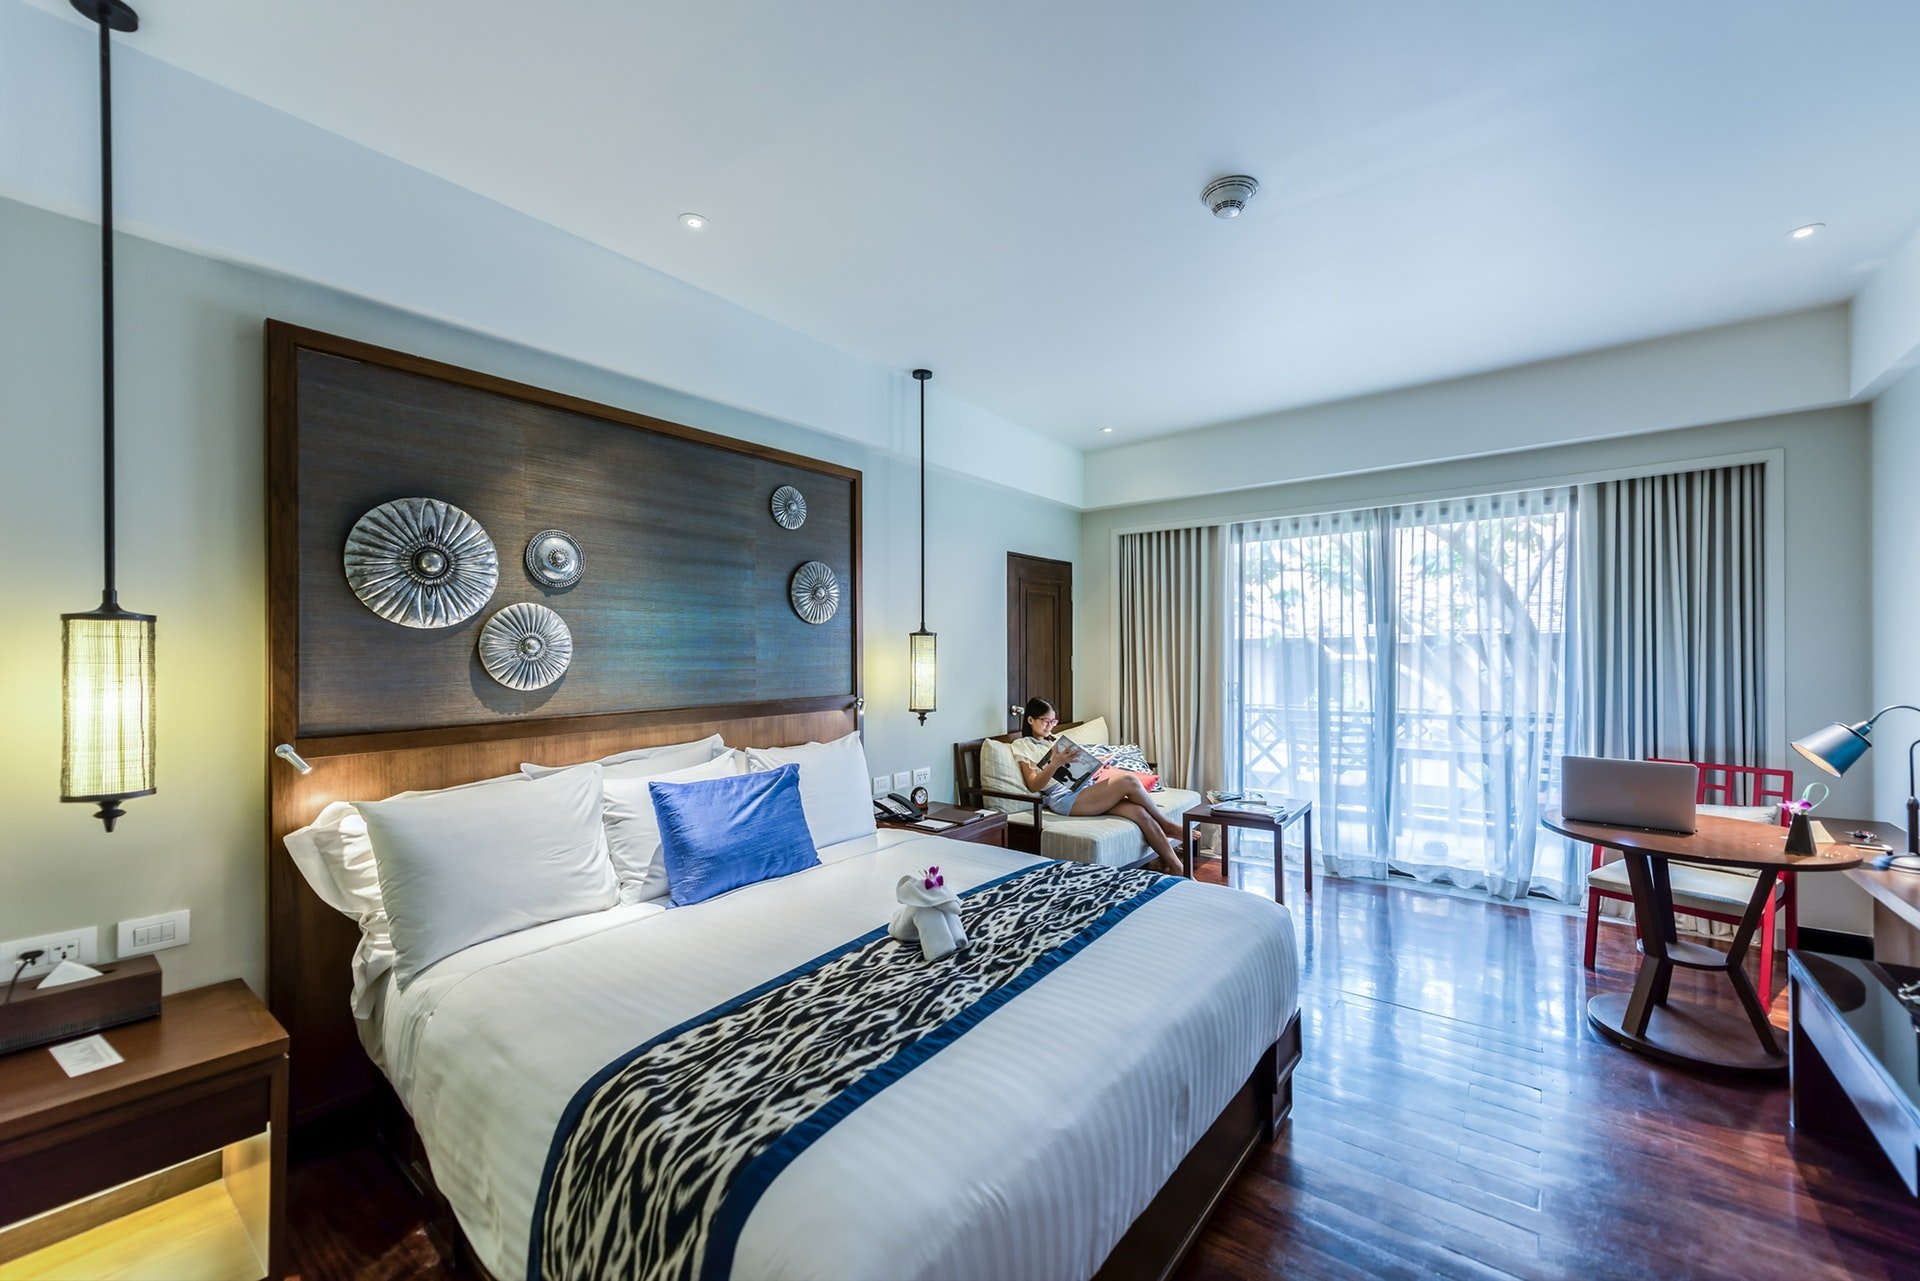 ARE MURPHY BEDS COMFORTABLE?